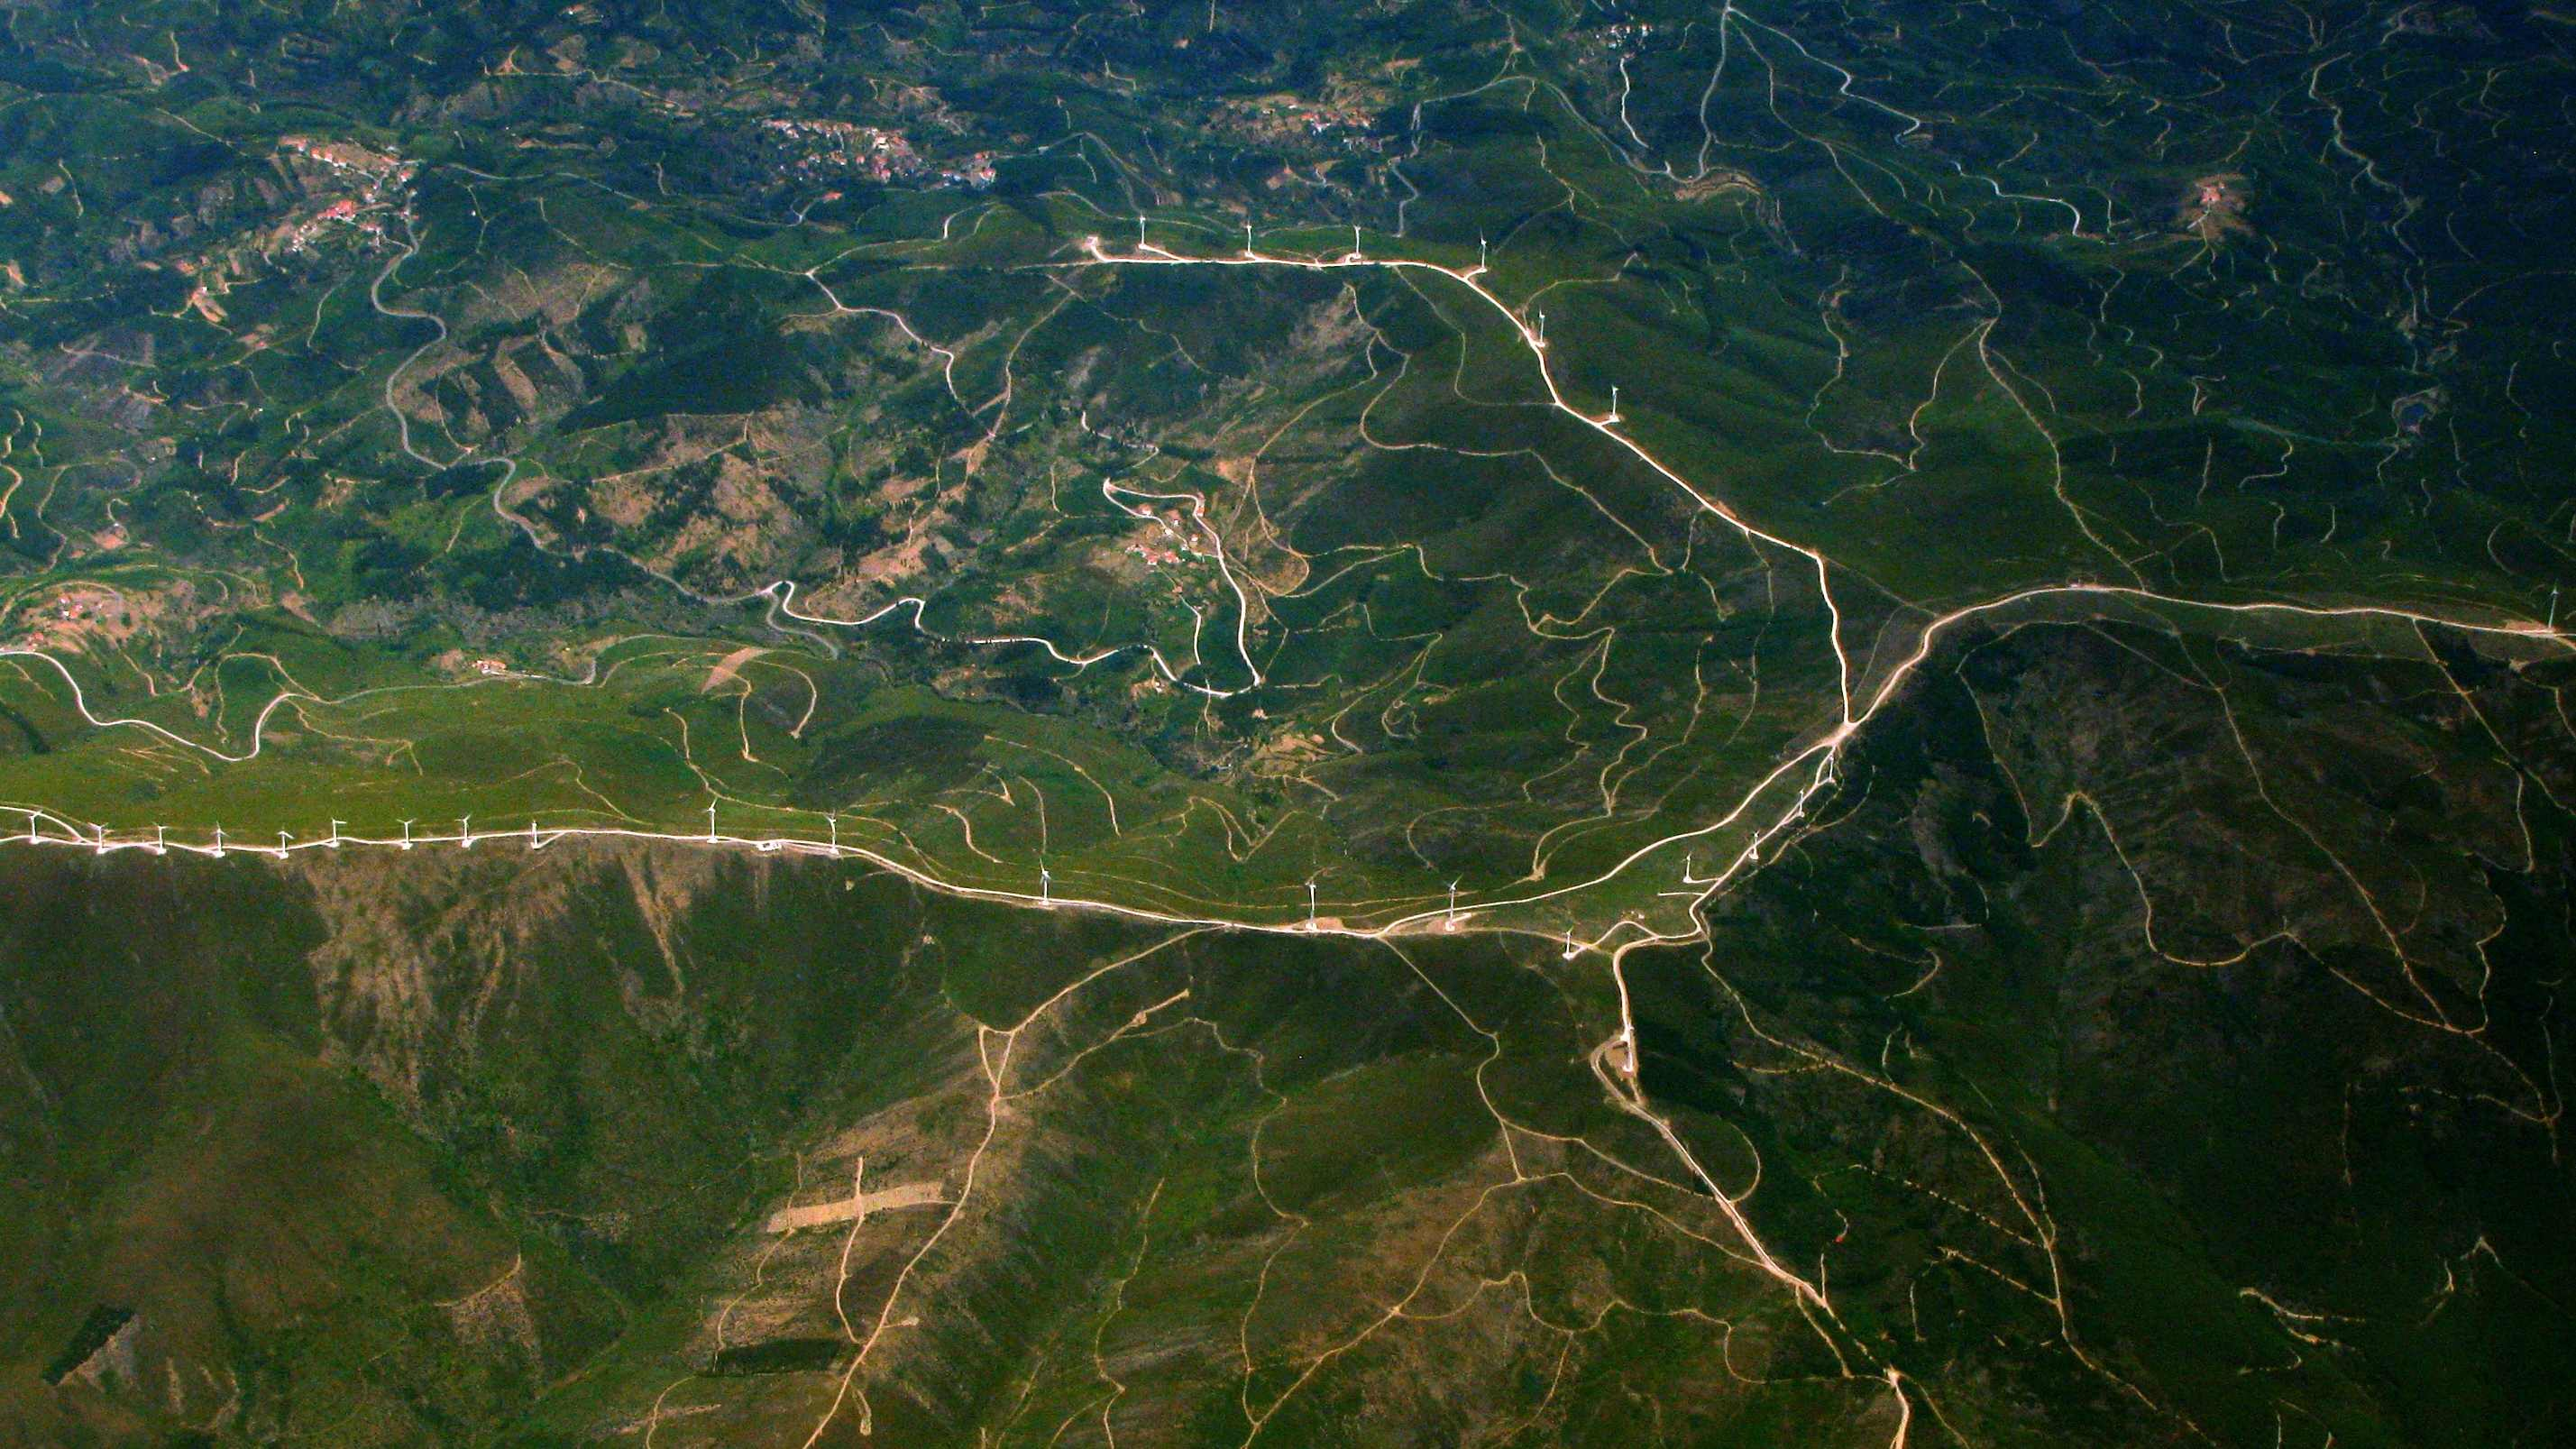 An aerial view of roads stretching across green hills